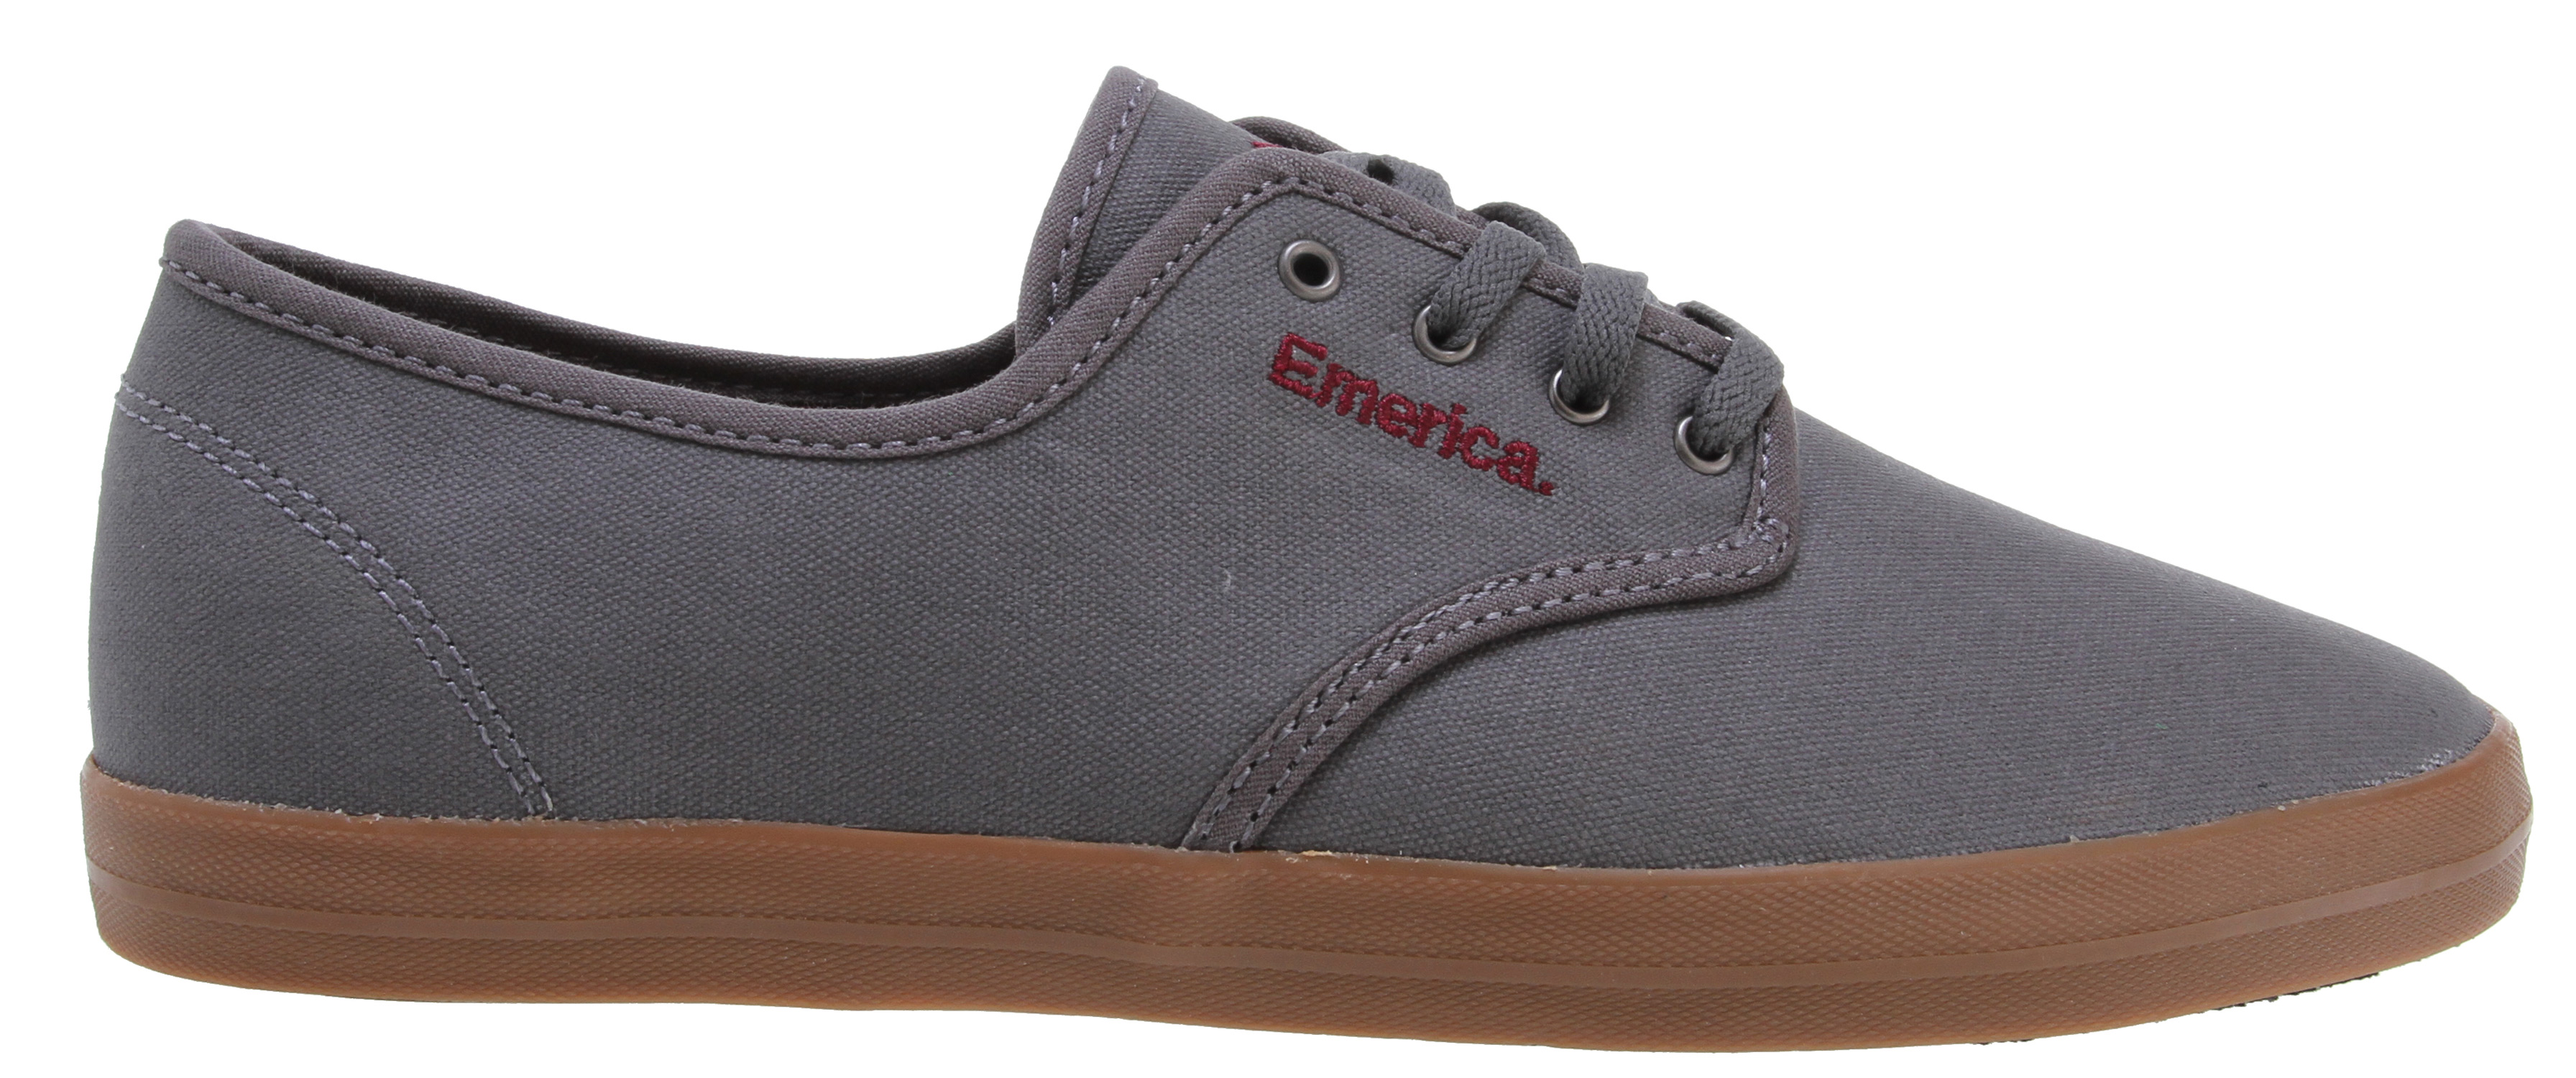 Skateboard Key Features of the Emerica The Wino Skate Shoes: Suede, textile or canvas upper materials EVA footbed - $34.95